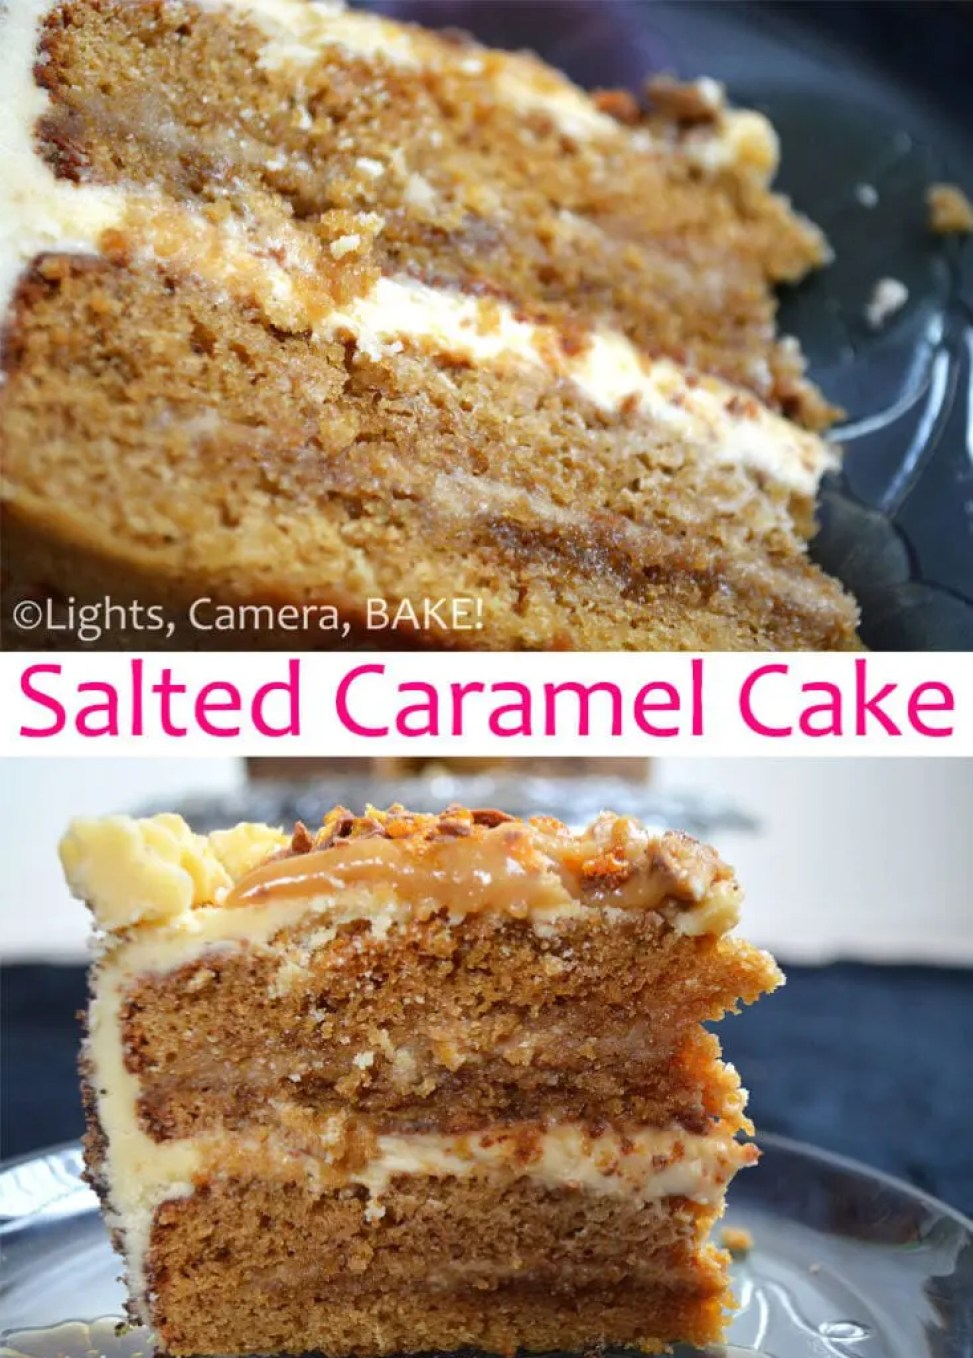 This Salted Caramel Layer Cake is a four layer caramel cake with salted caramel in between each layer with a cream cheese icing, topped with more salted caramel and broken honeycomb candy bars! A showstopper for sure! #saltedcaramel #caramelcake #celebrationcake